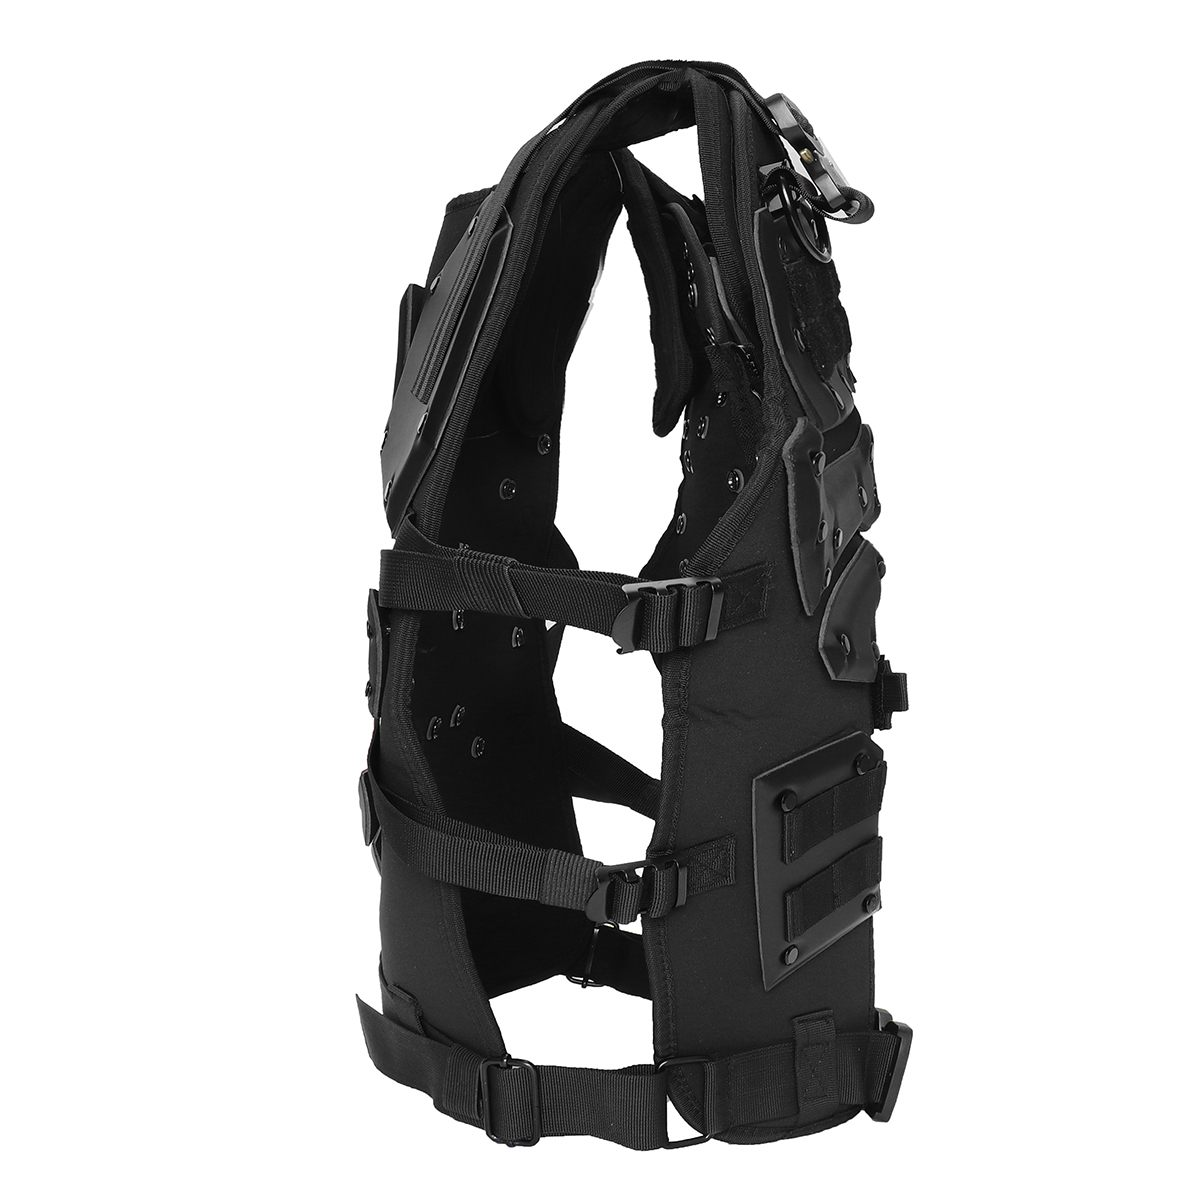 Airsoft Military Tactical Vest Molle Hunting Combat Body Armor Vest Outdoor Game Clothing Hunting Vest Training